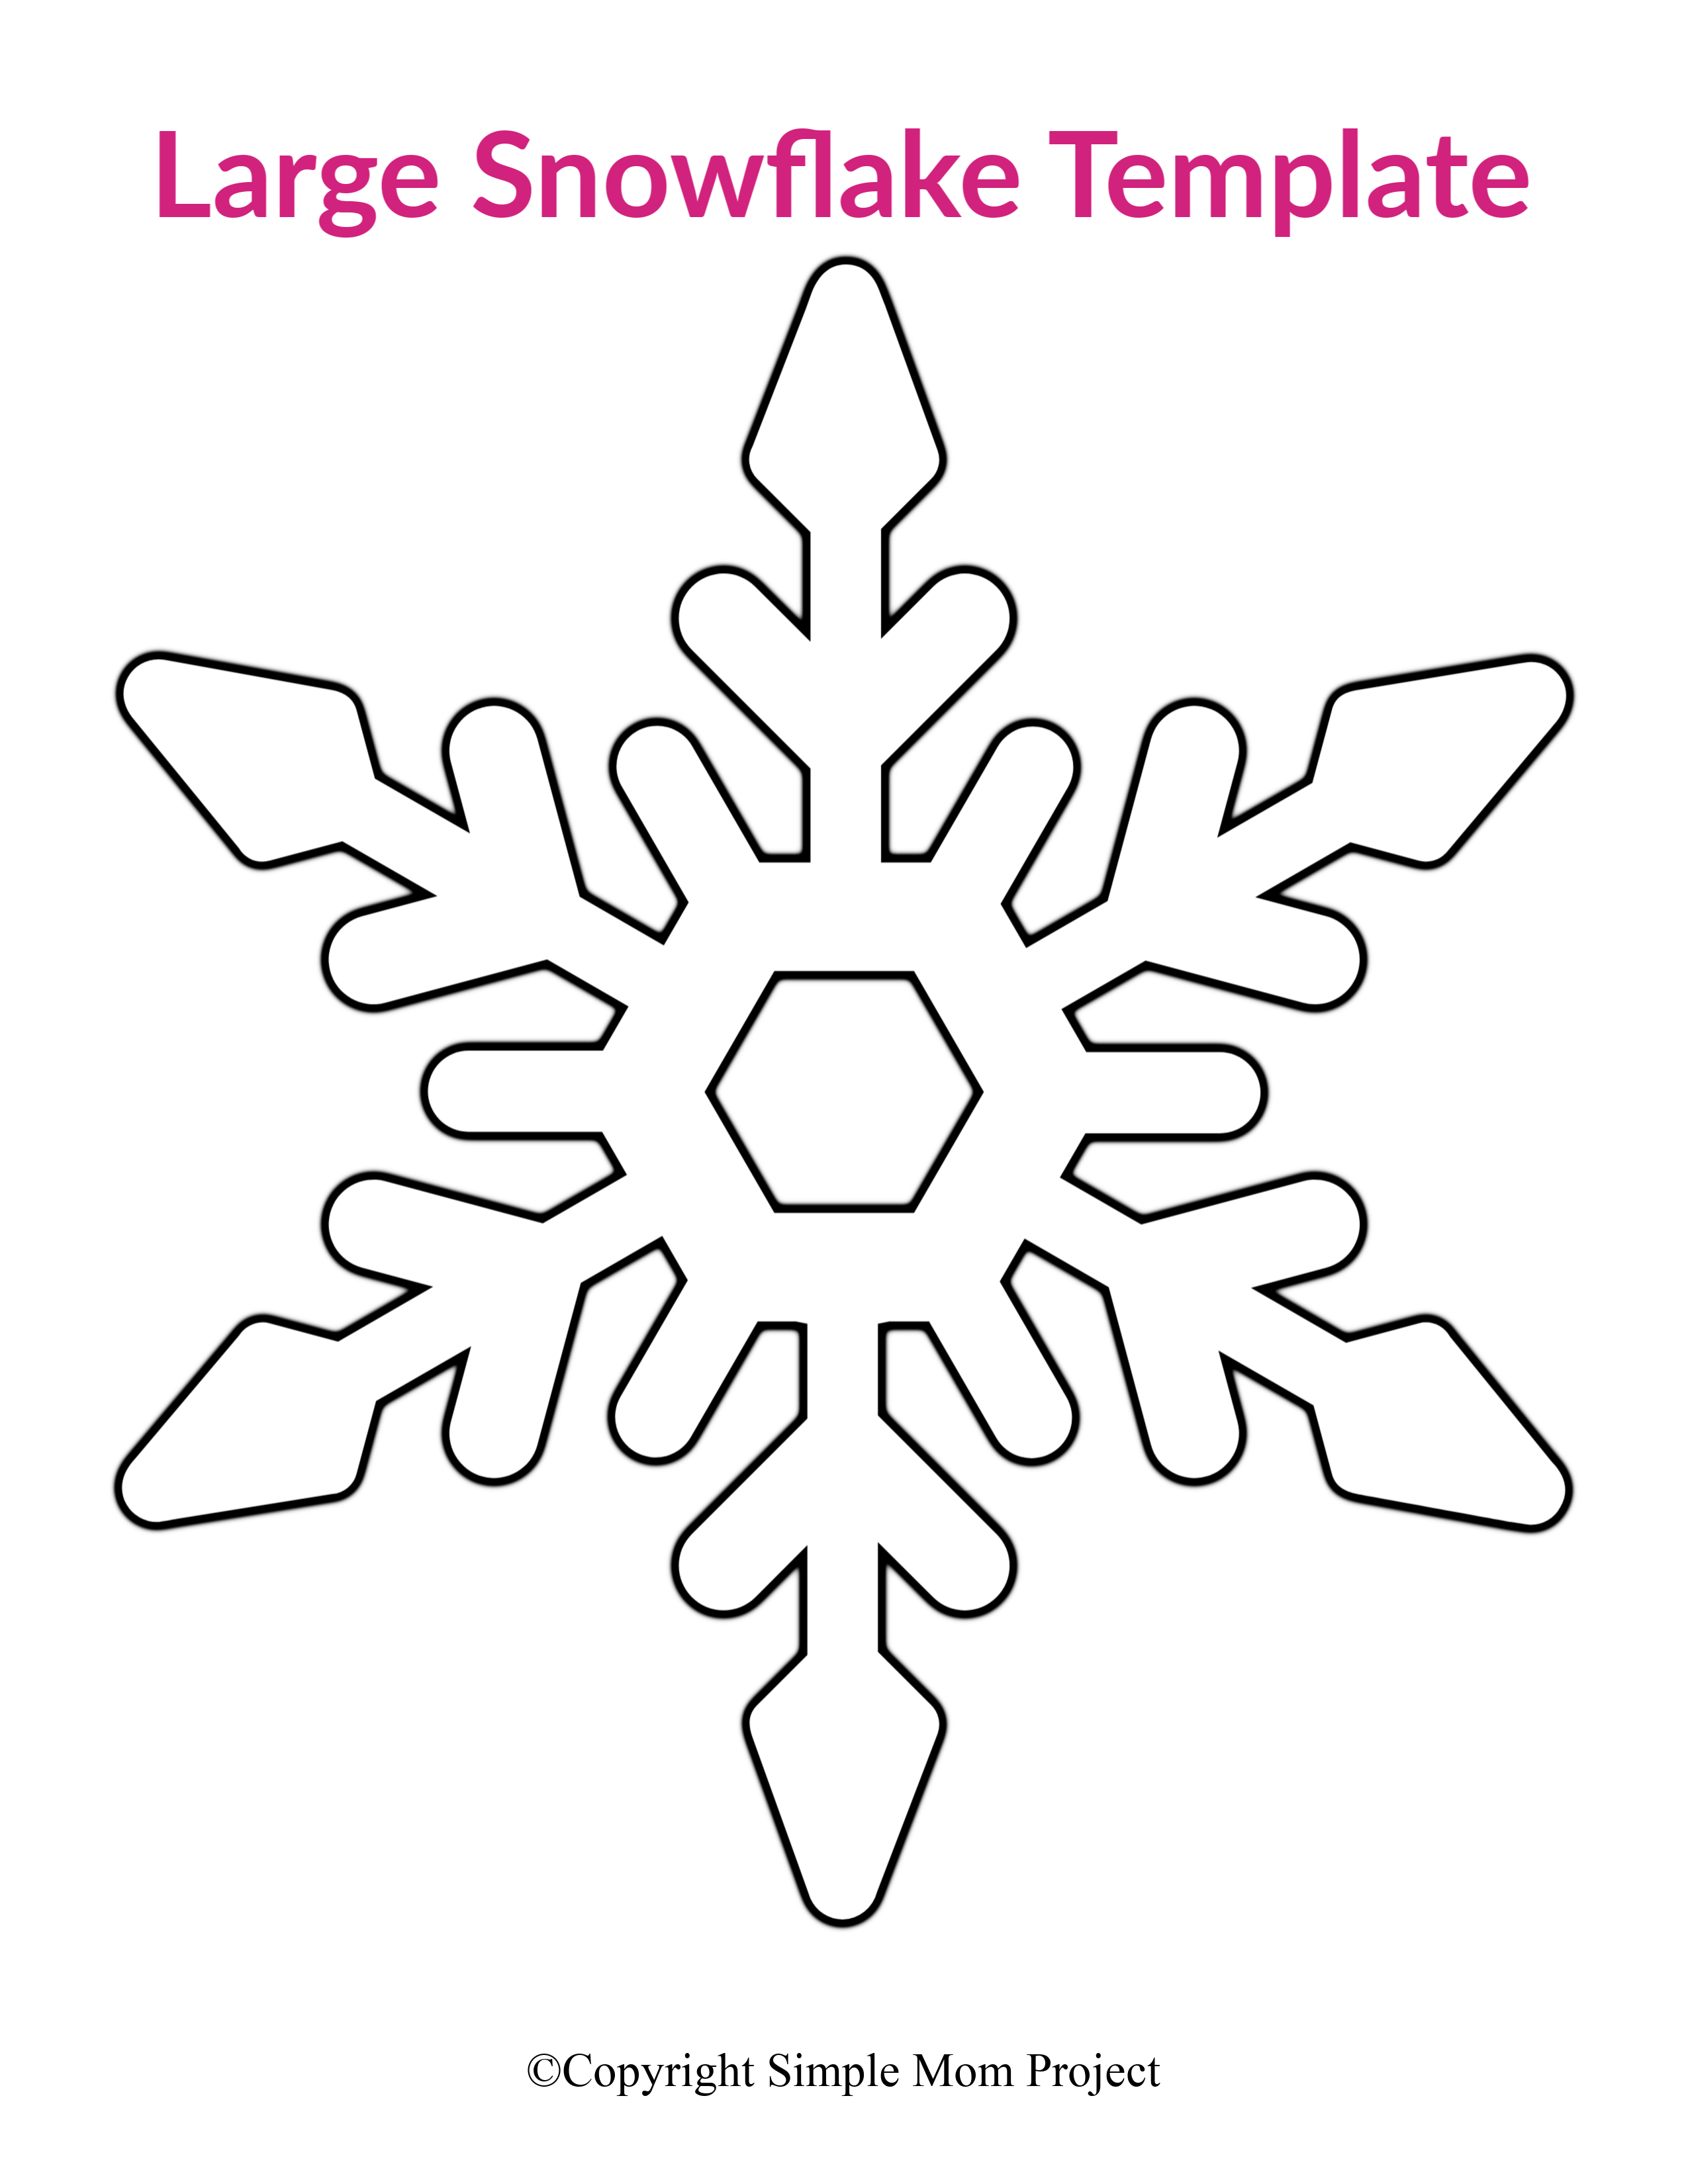 8 Free Printable Large Snowflake Templates